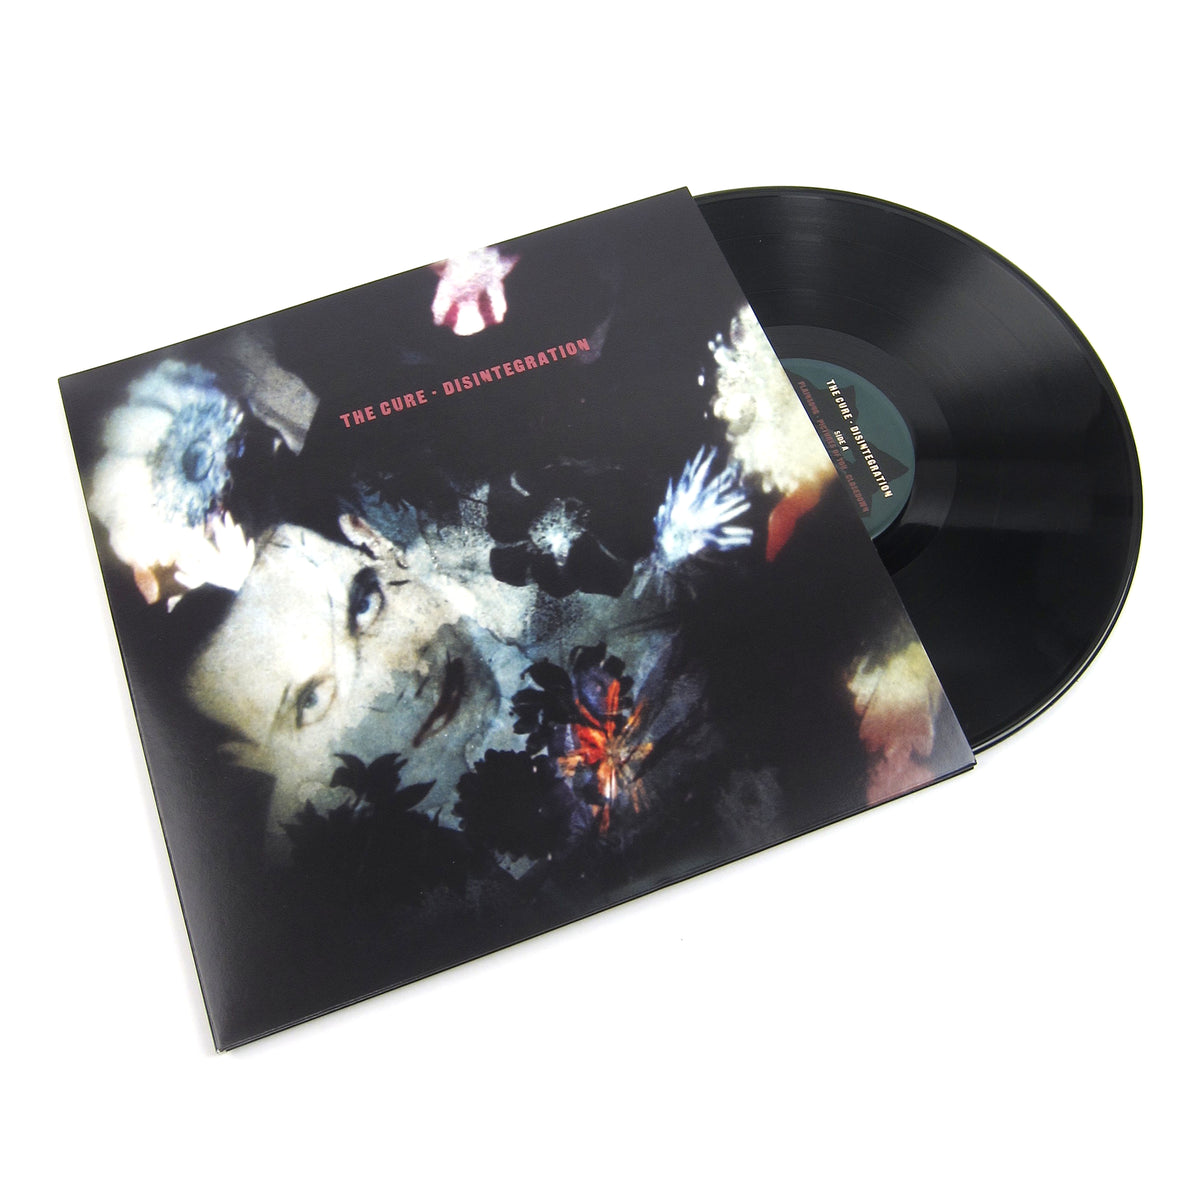 The Cure: Disintegration / Entreat (180g) Vinyl LP Album Pack